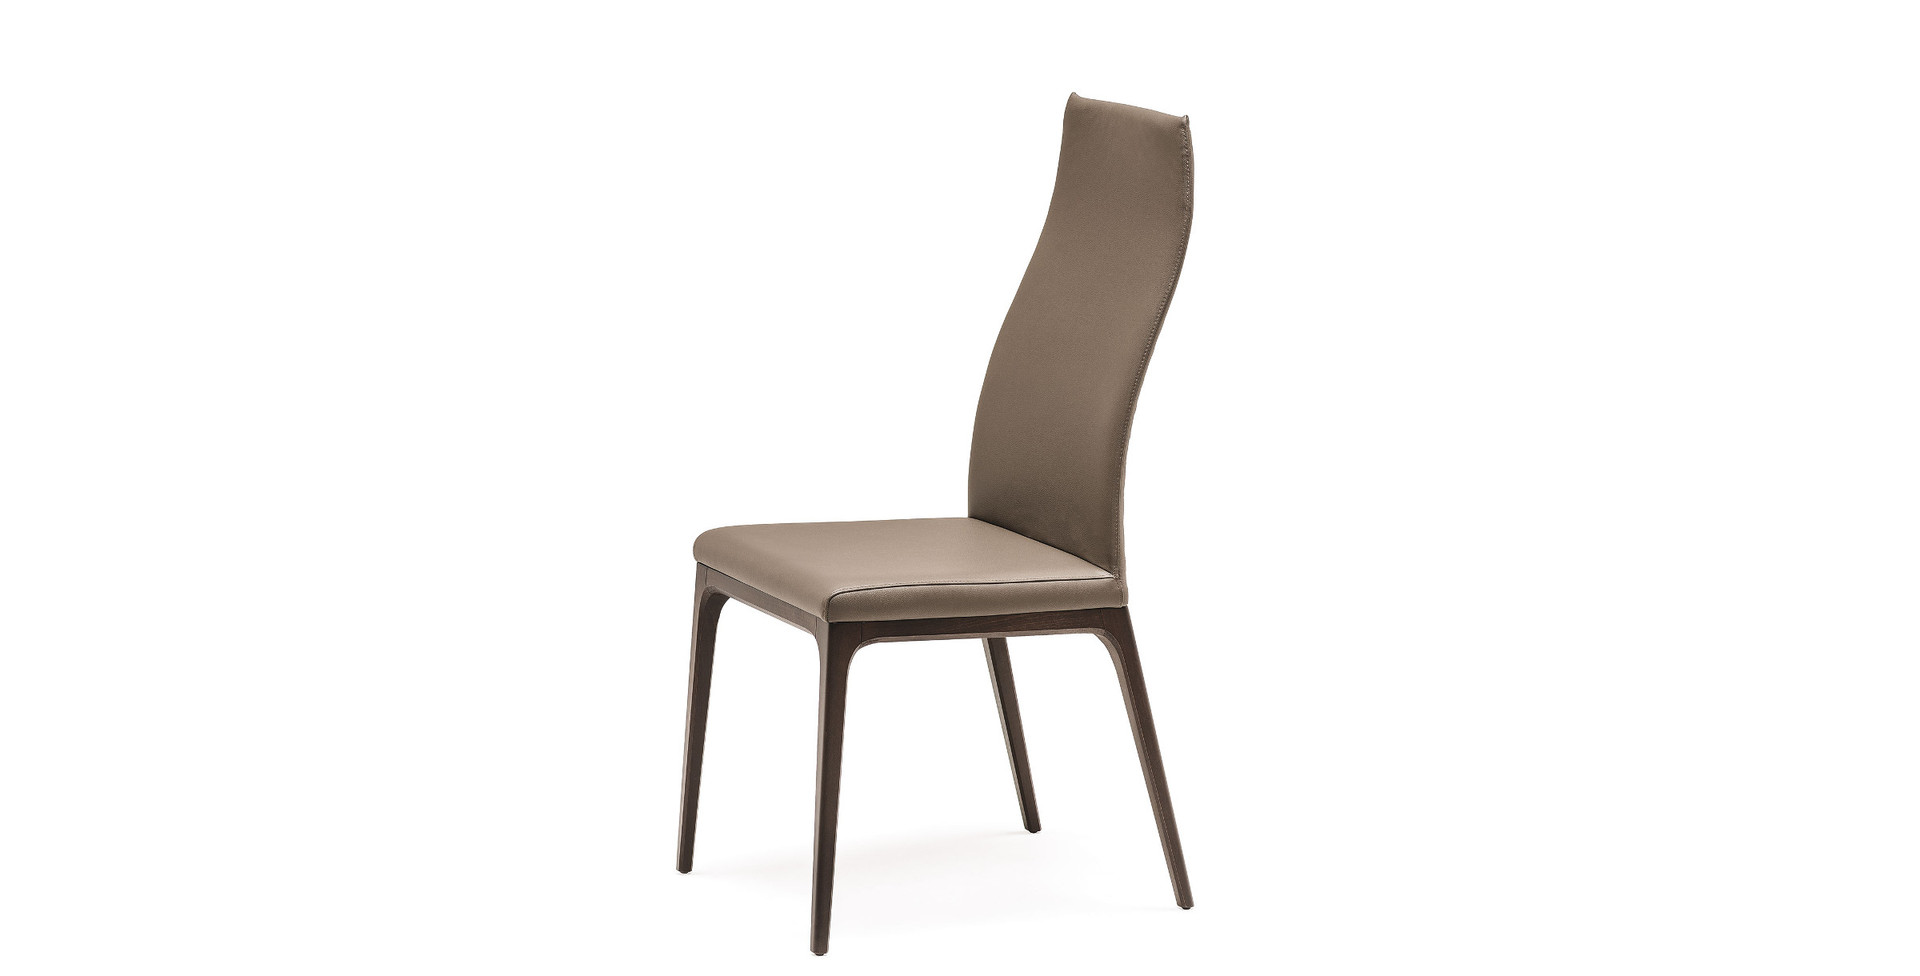 Arcadia Couture Chair Pic10